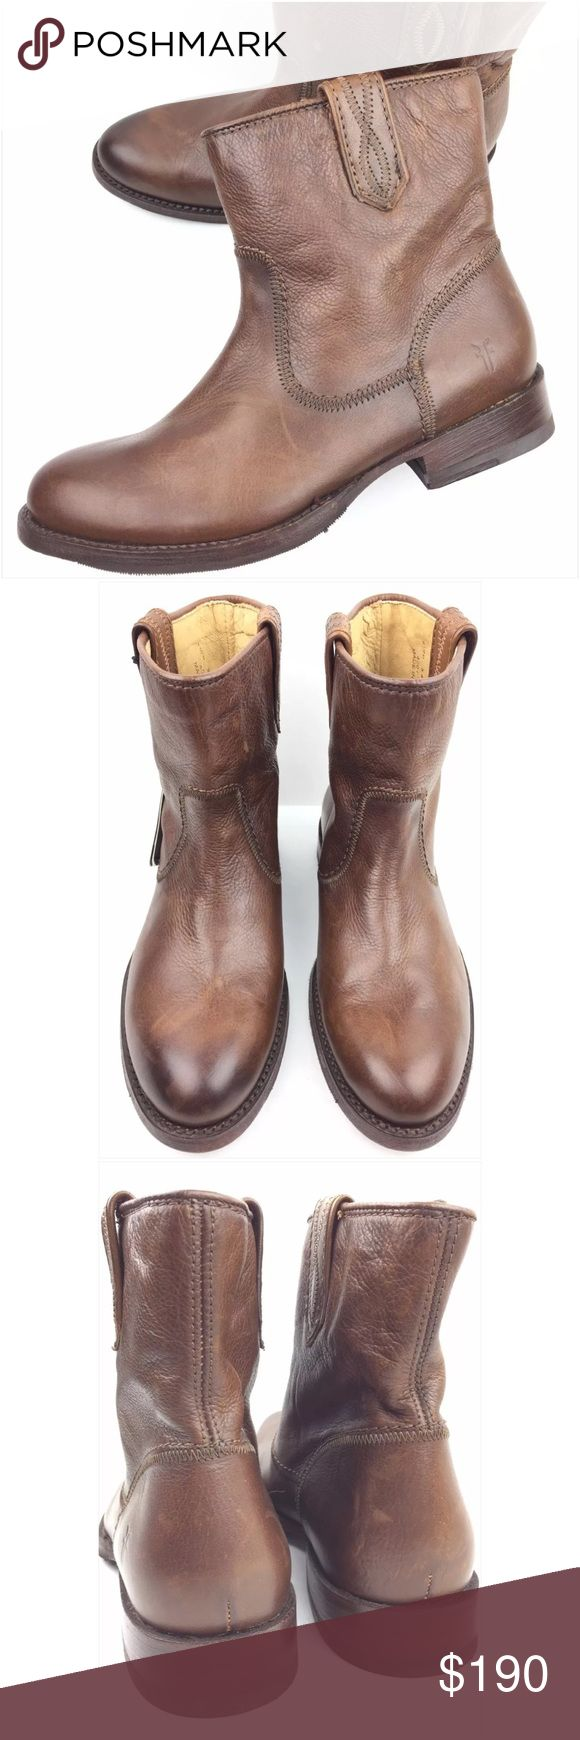 Frye Jamie Stitch Cognac Leather Short Ankle Boots Worn once   Like new condition   Boots have minor marks or scratches.   Actual pictures   Authentic   Original box not included.   Size: 5.5 woman's Frye Shoes Ankle Boots & Booties